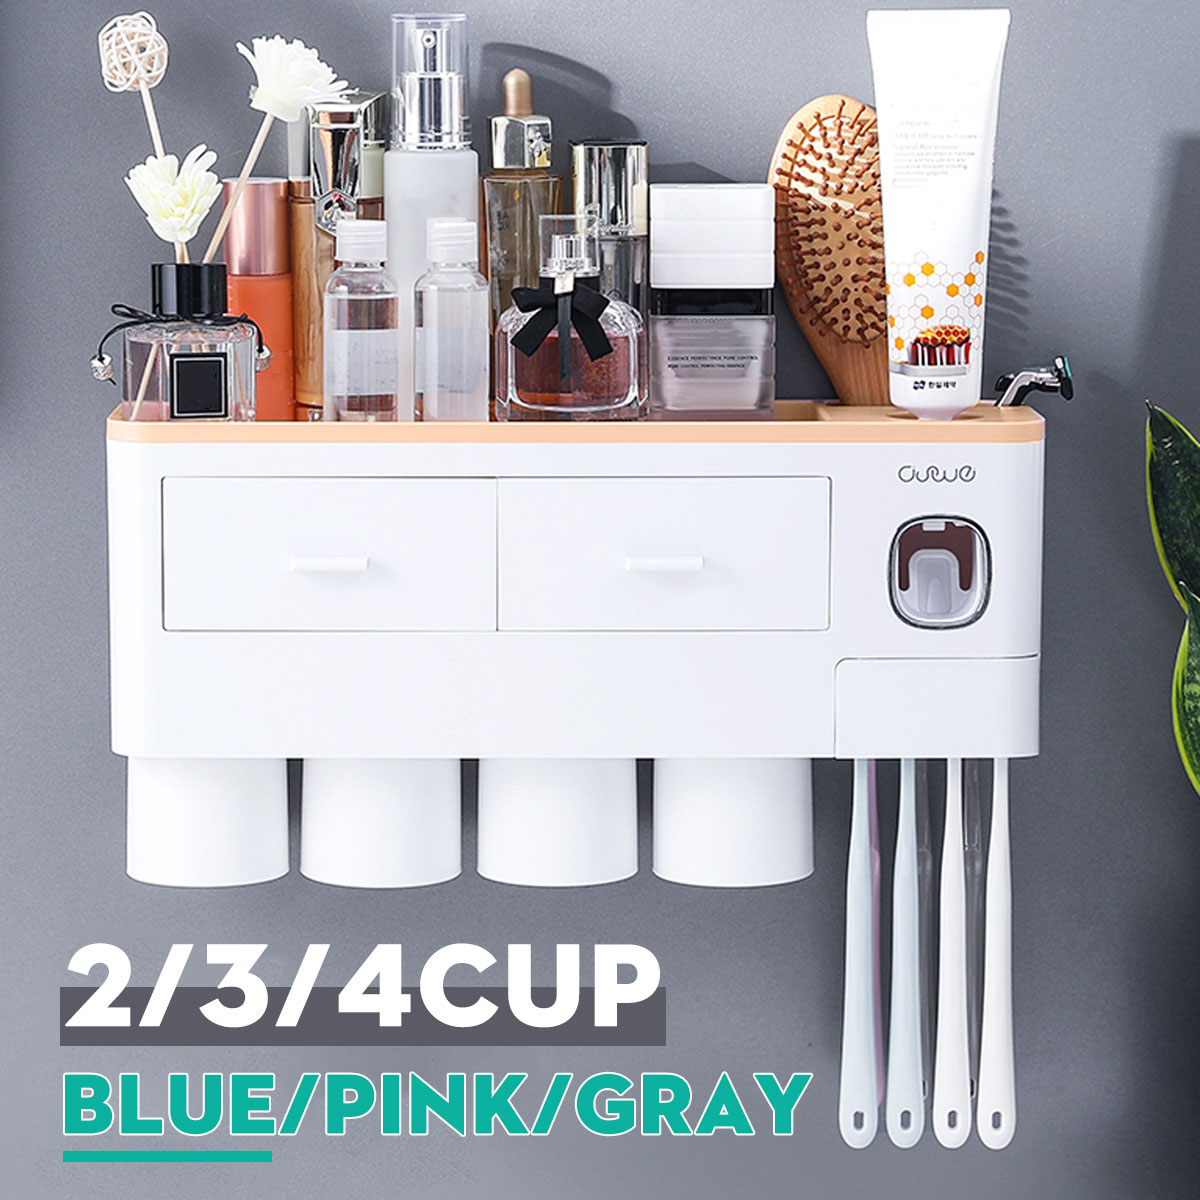 2/3/4 Cups Couple Toothbrush Storage Tool Magnetic Toothpaste Holder Household Toothbrush Cup Holder Portable And Easy Install